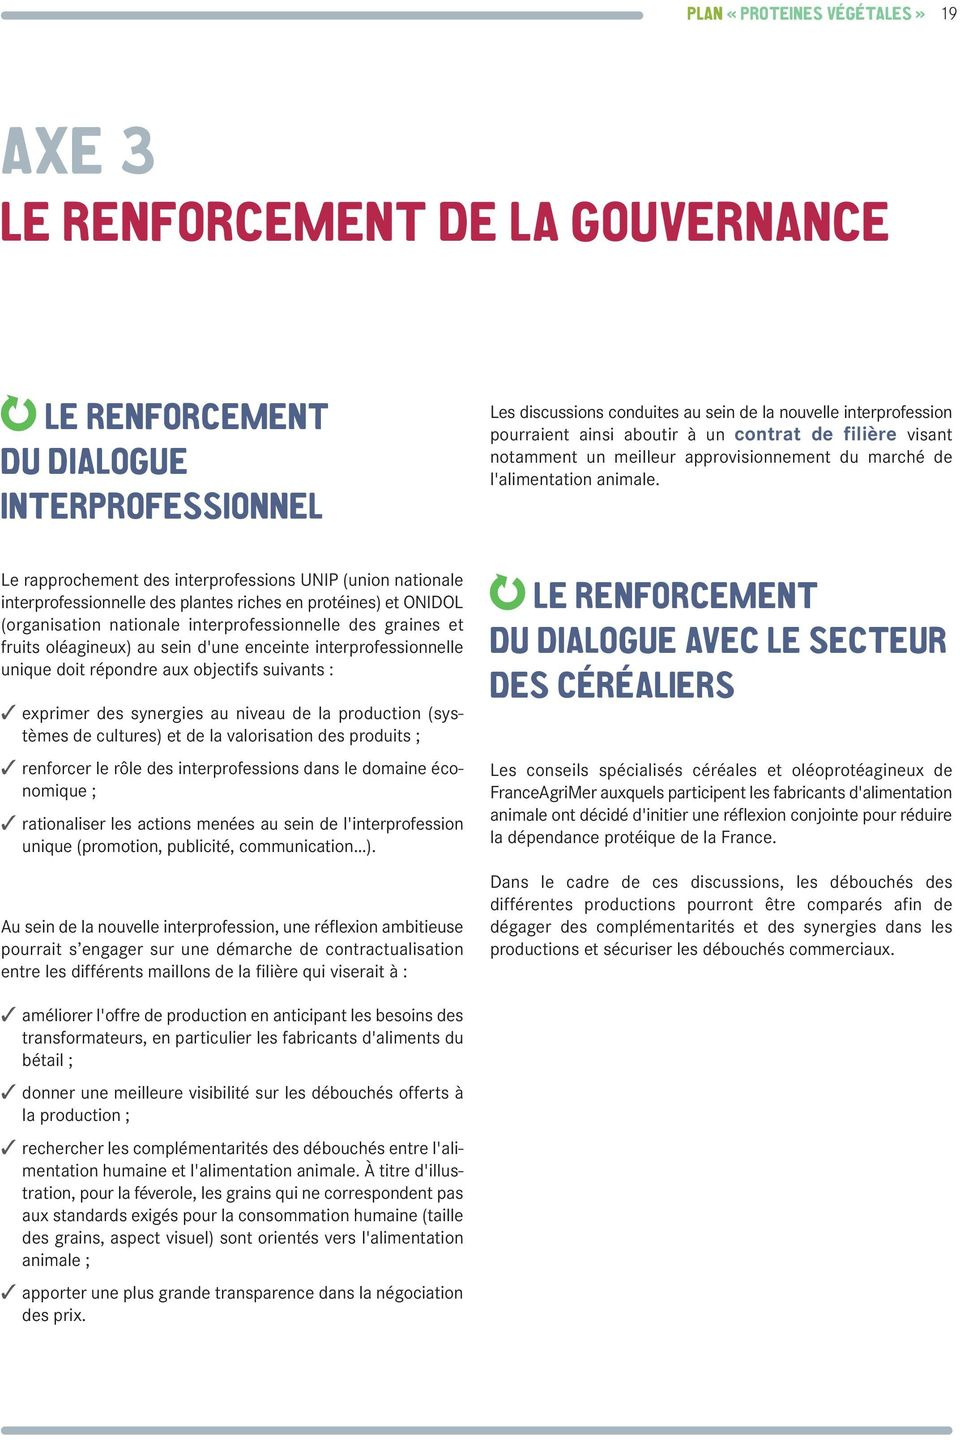 Le rapprochement des interprofessions UNIP (union nationale interprofessionnelle des plantes riches en protéines) et ONIDOL (organisation nationale interprofessionnelle des graines et fruits